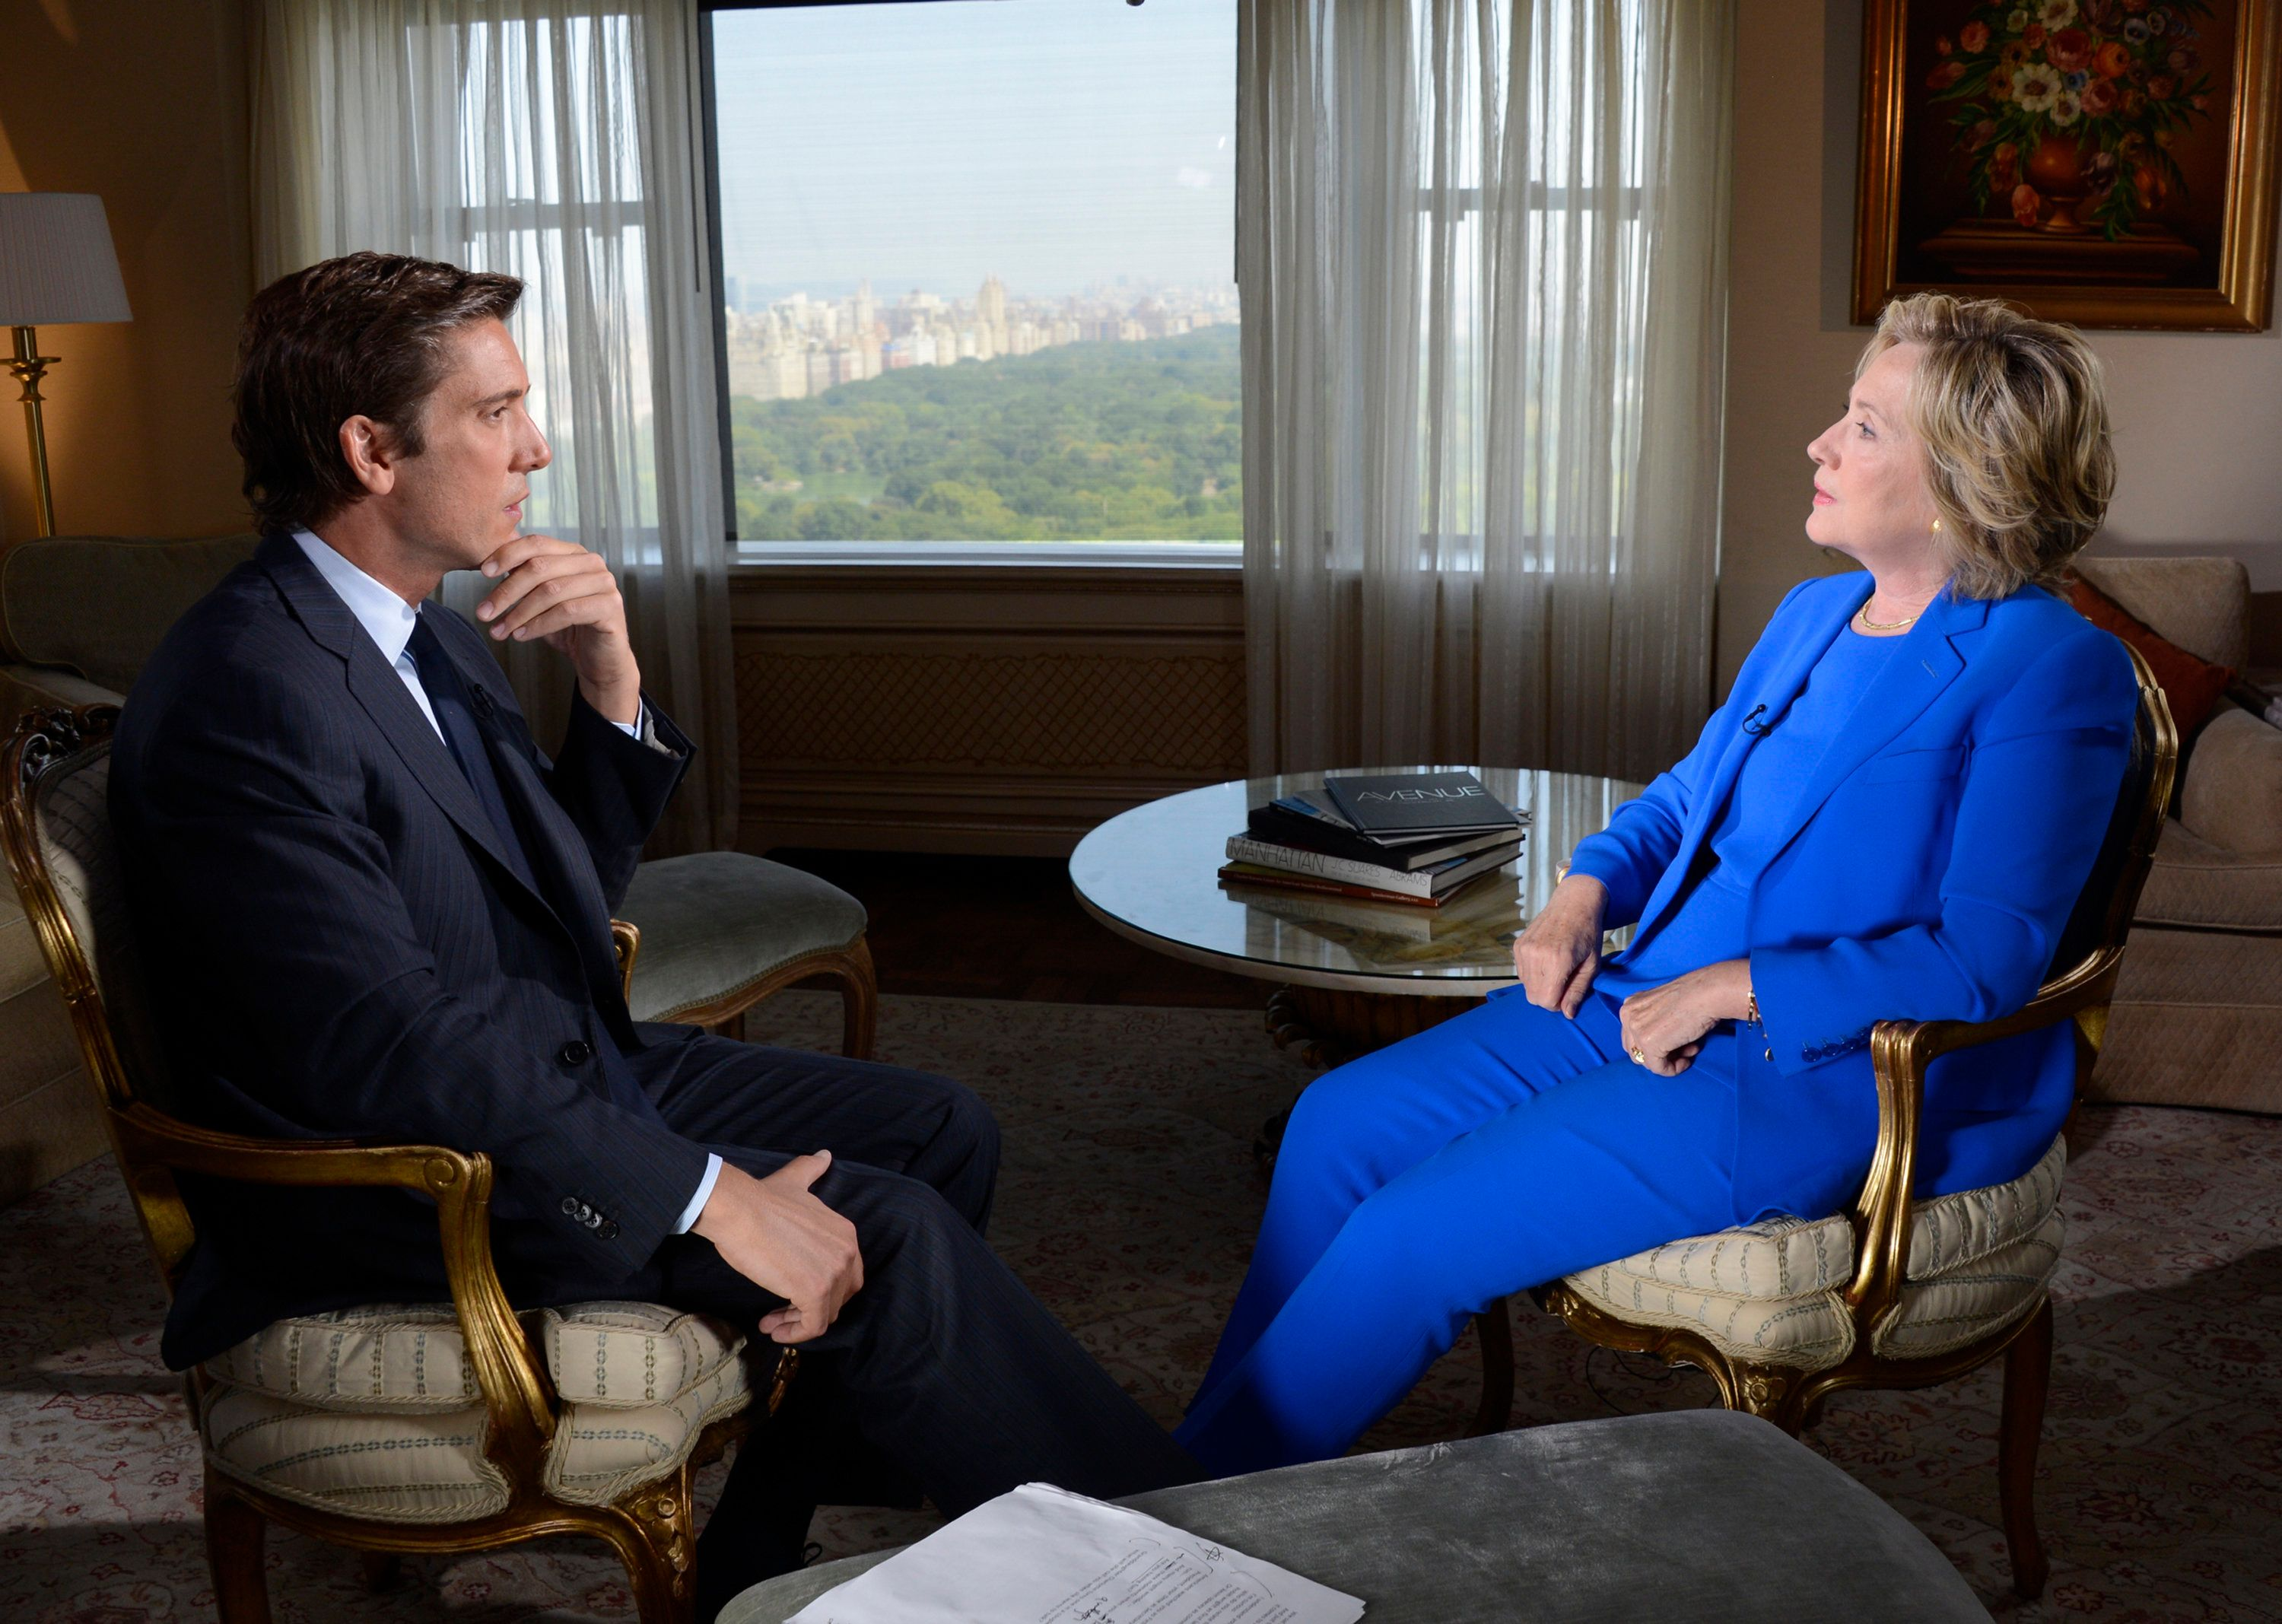 ABC NEWS - David Muir conducts a one-on-one interview with Democratic Presidential Candidate Hillary Clinton on the Iran deal, her email as Secretary of State, current state of the campaign and other issues, airing on WORLD NEWS TONIGHT, Tuesday, Sept. 8 (6:30-7pm, ET) as well as all ABC News programs and platforms.   (Photo by Ida Mae Astute/ABC via Getty Images)  DAVID MUIR, HILLARY CLINTON